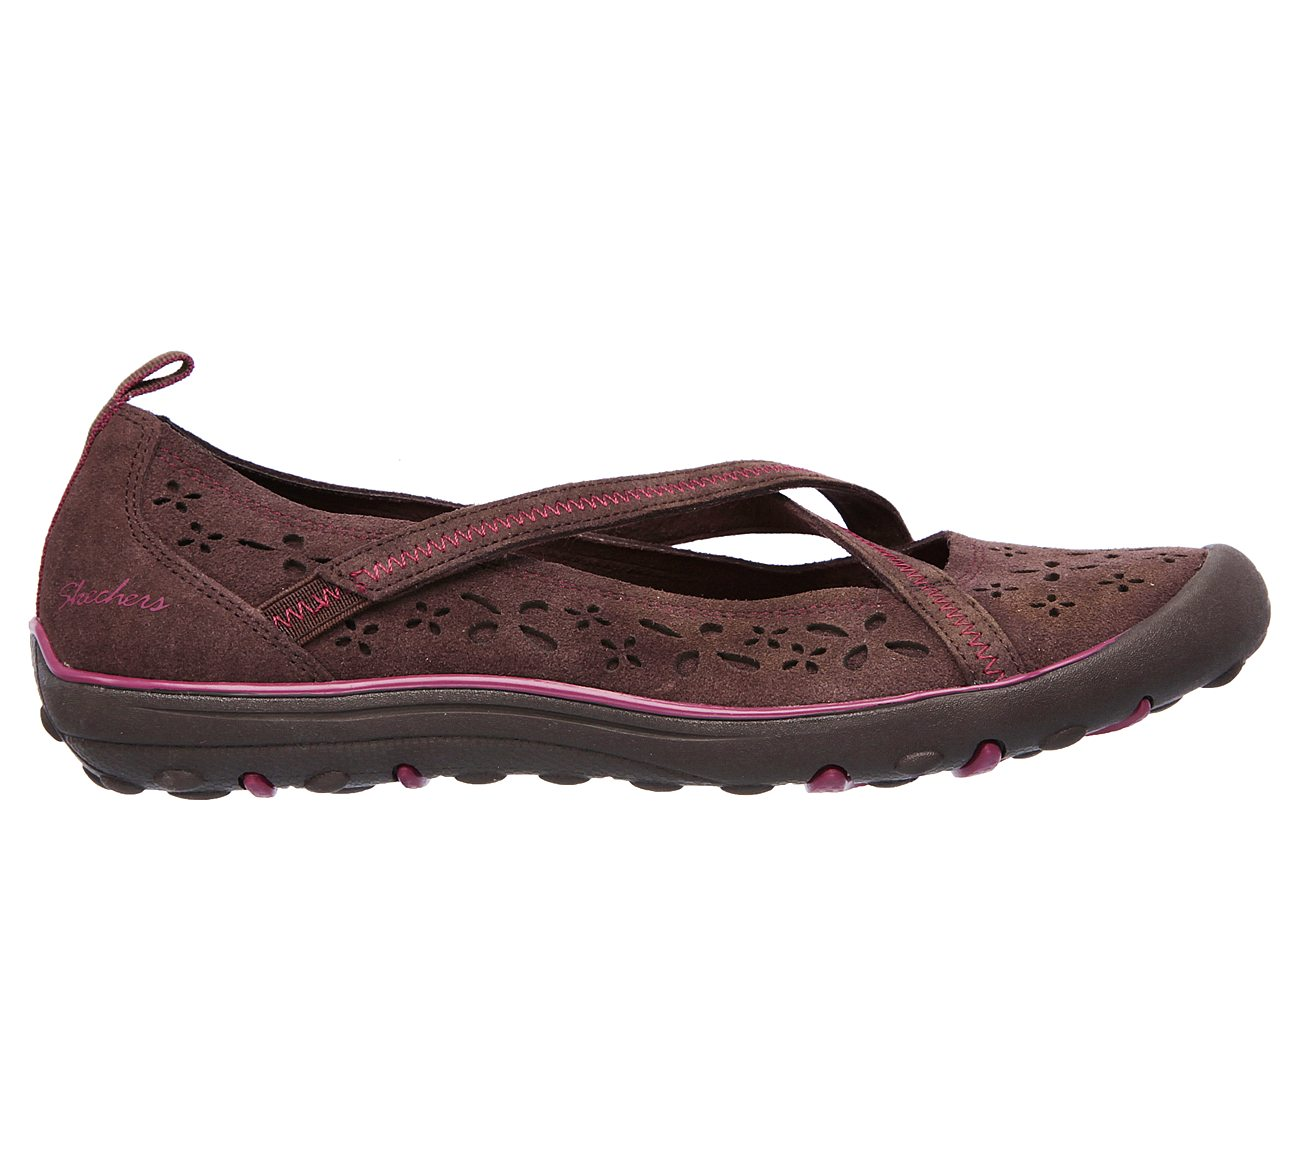 11ef8afb6dc9 Buy SKECHERS Relaxed Fit  Earth Fest - Sustainability Modern Comfort ...